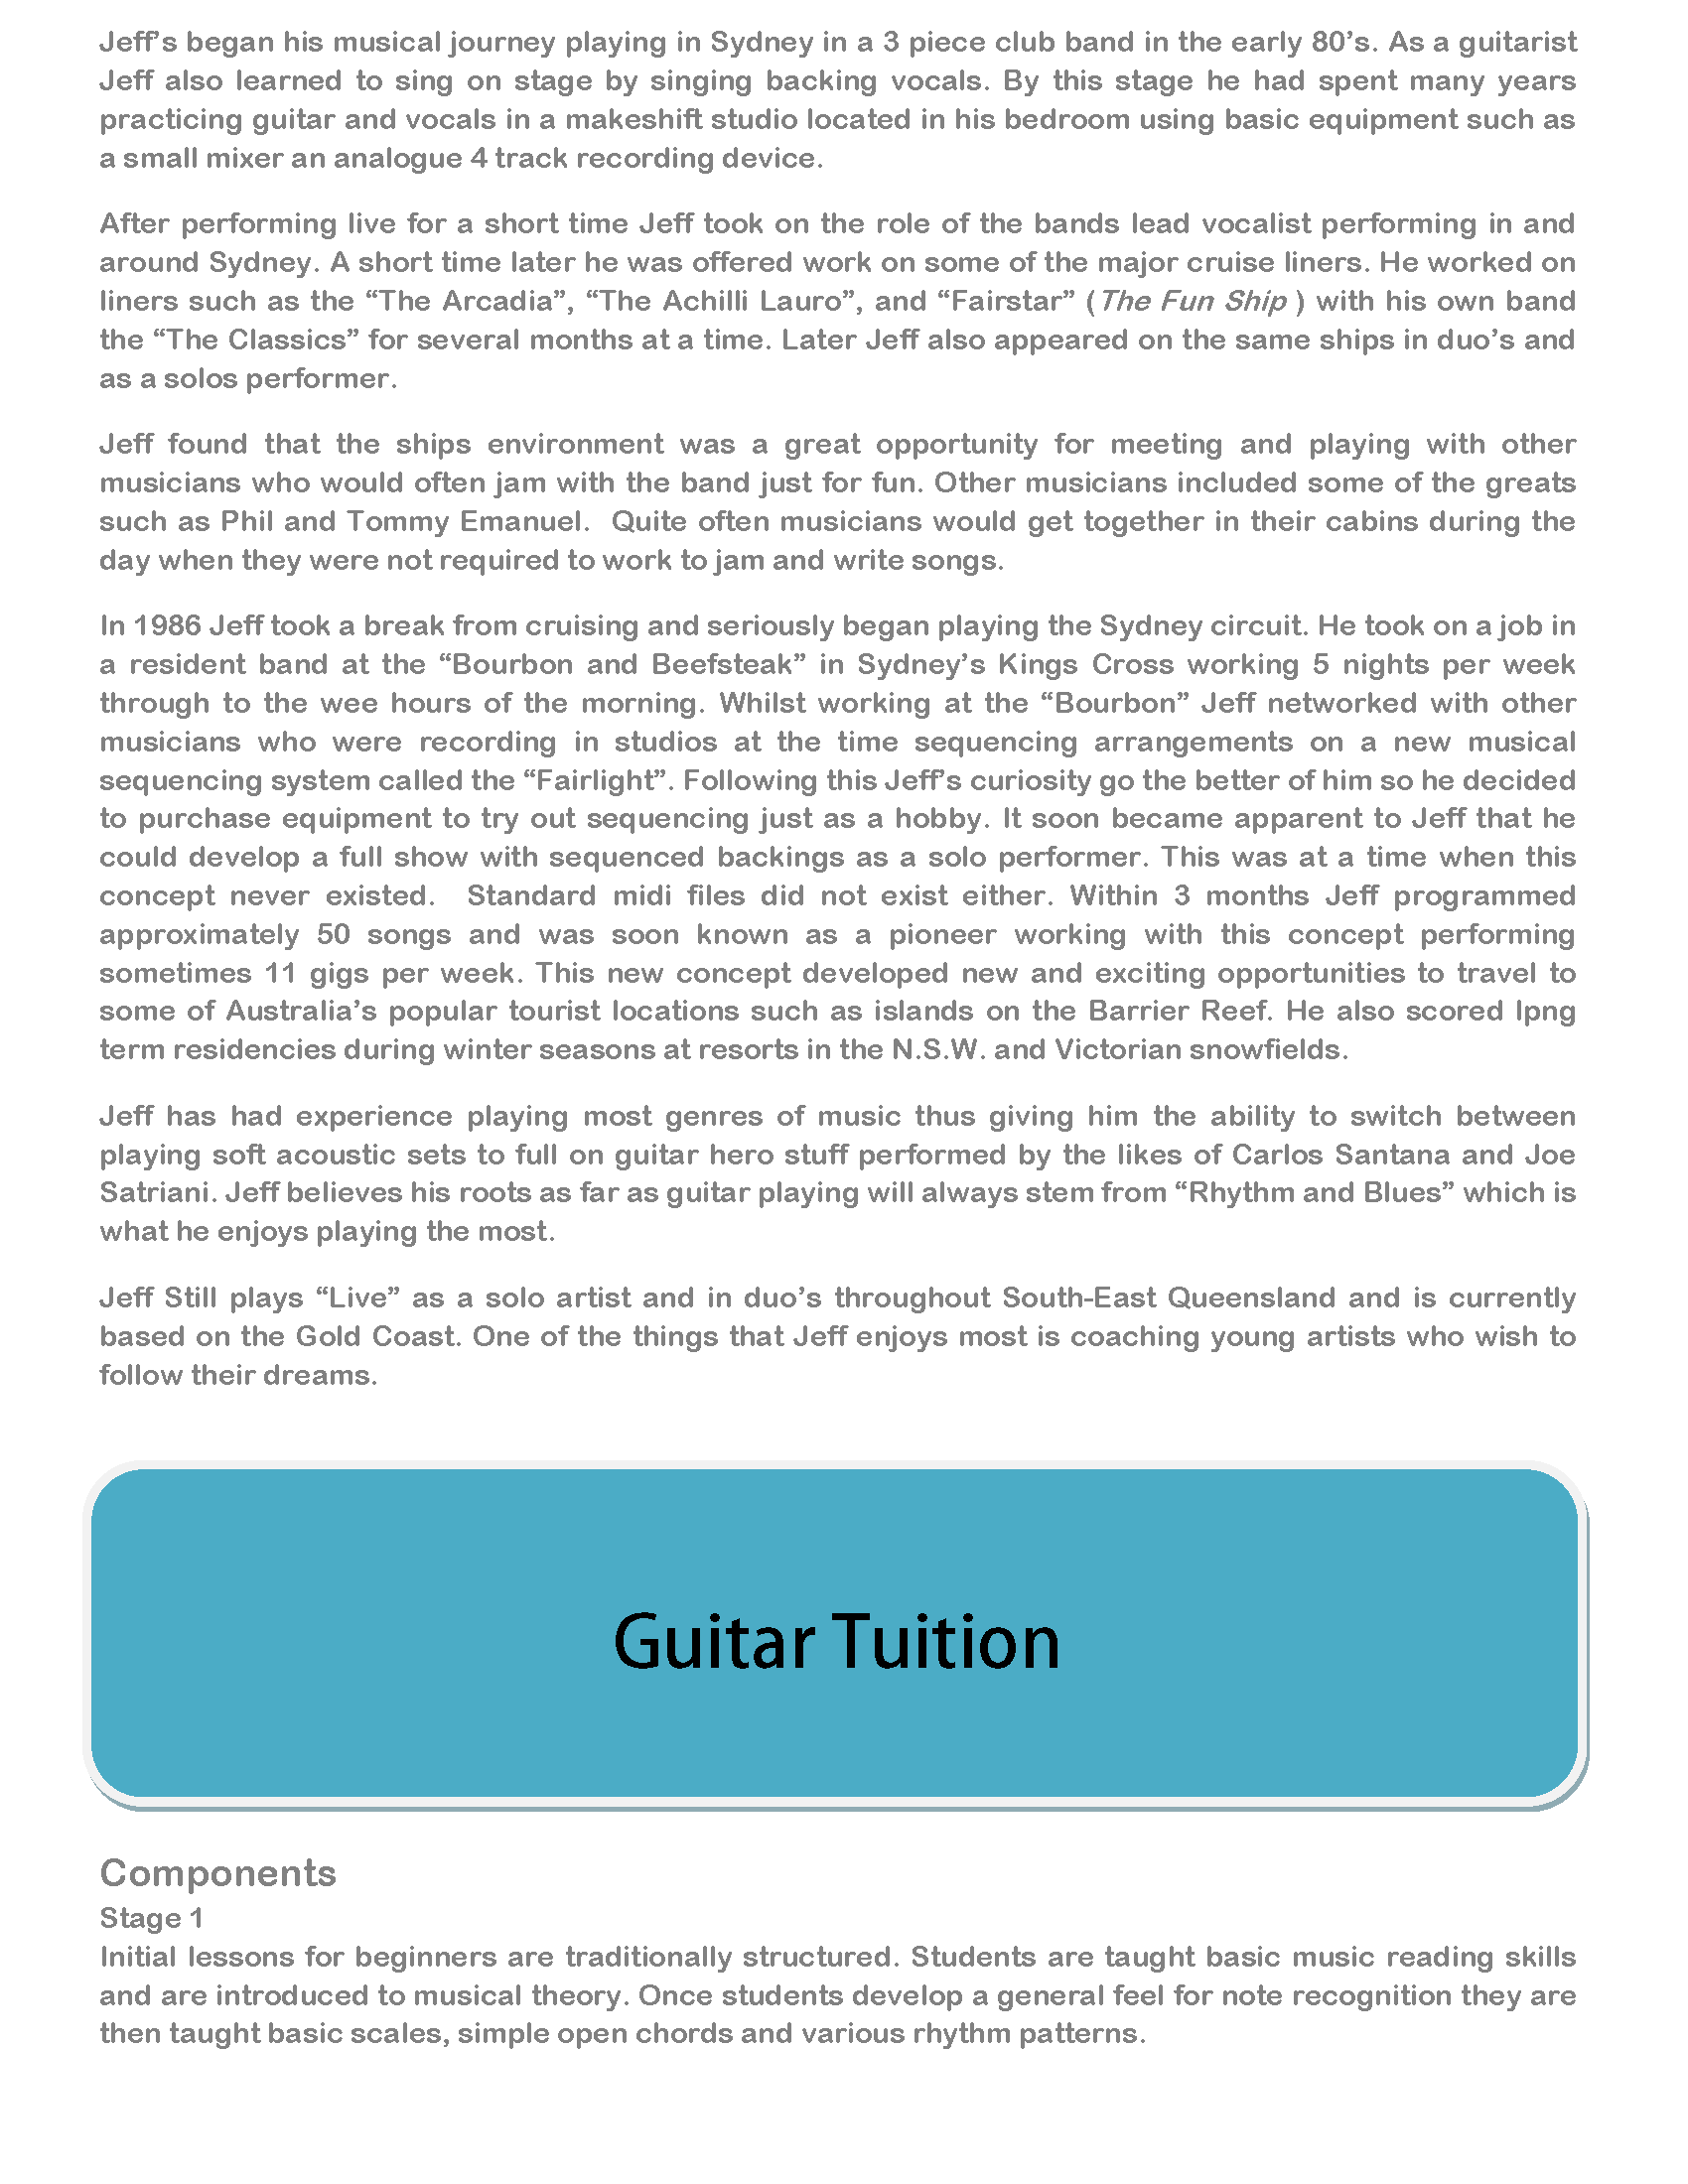 Tuition ver.2b_Page_2